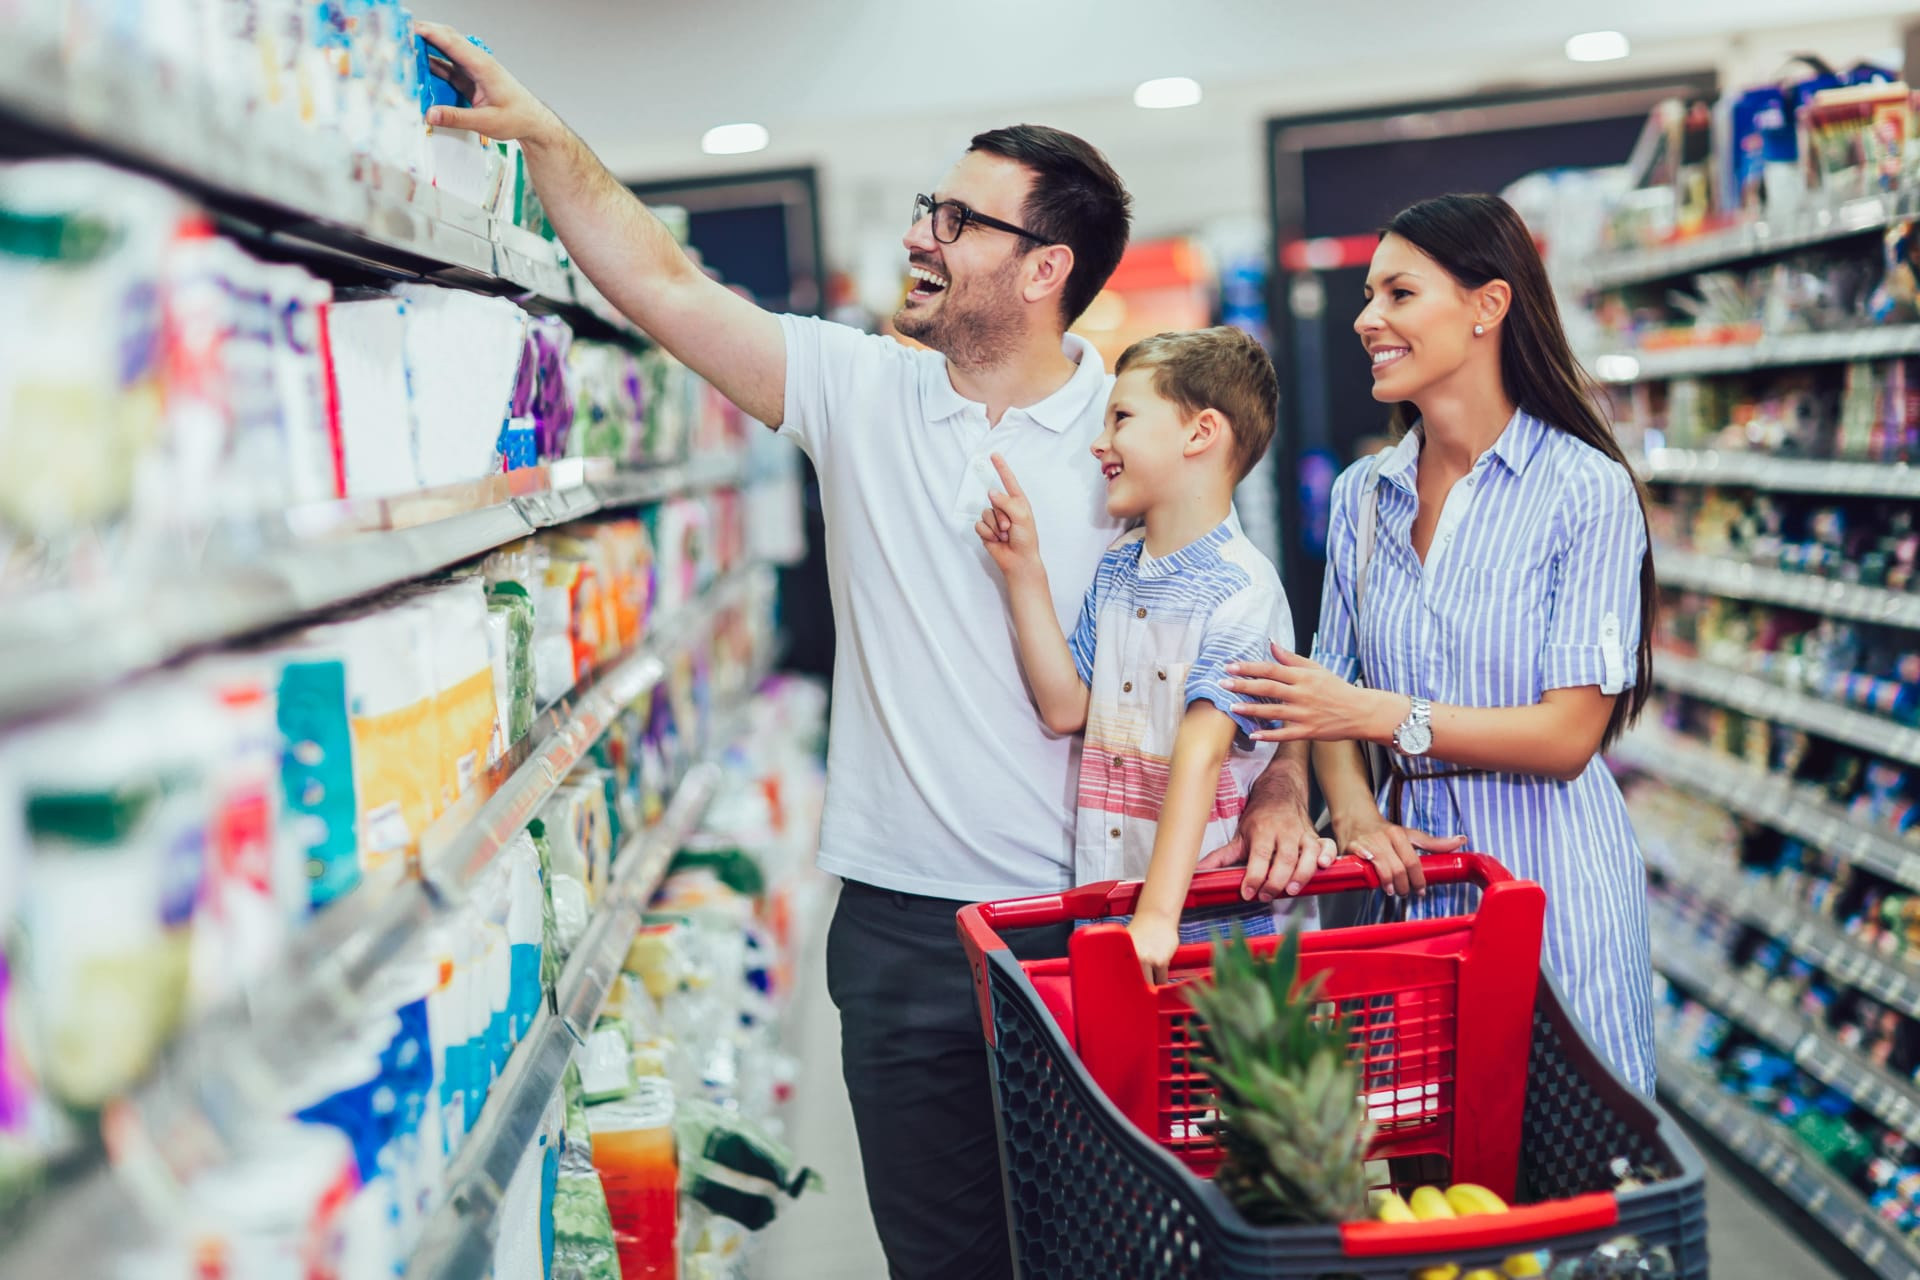 Family in a supermarket